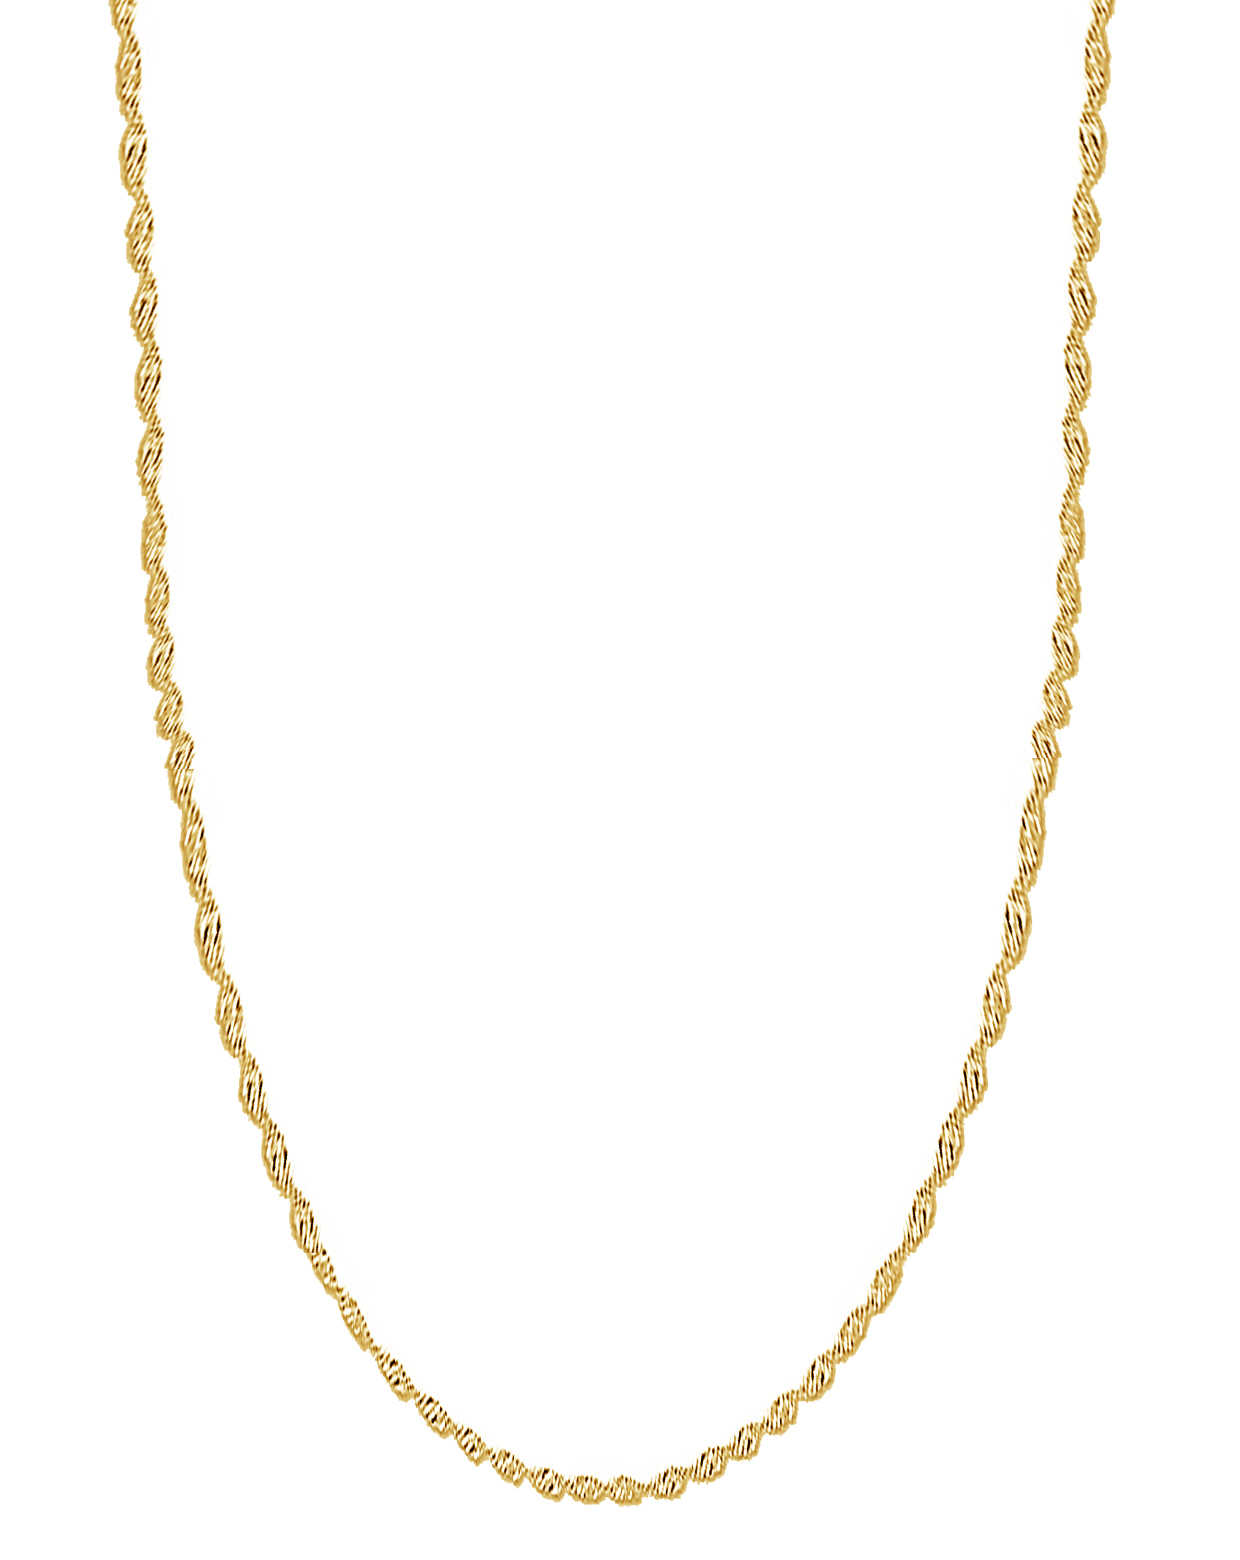 14k Yellow Gold Singapore Rope Chain Necklace 1.7 Mm 20 Inches